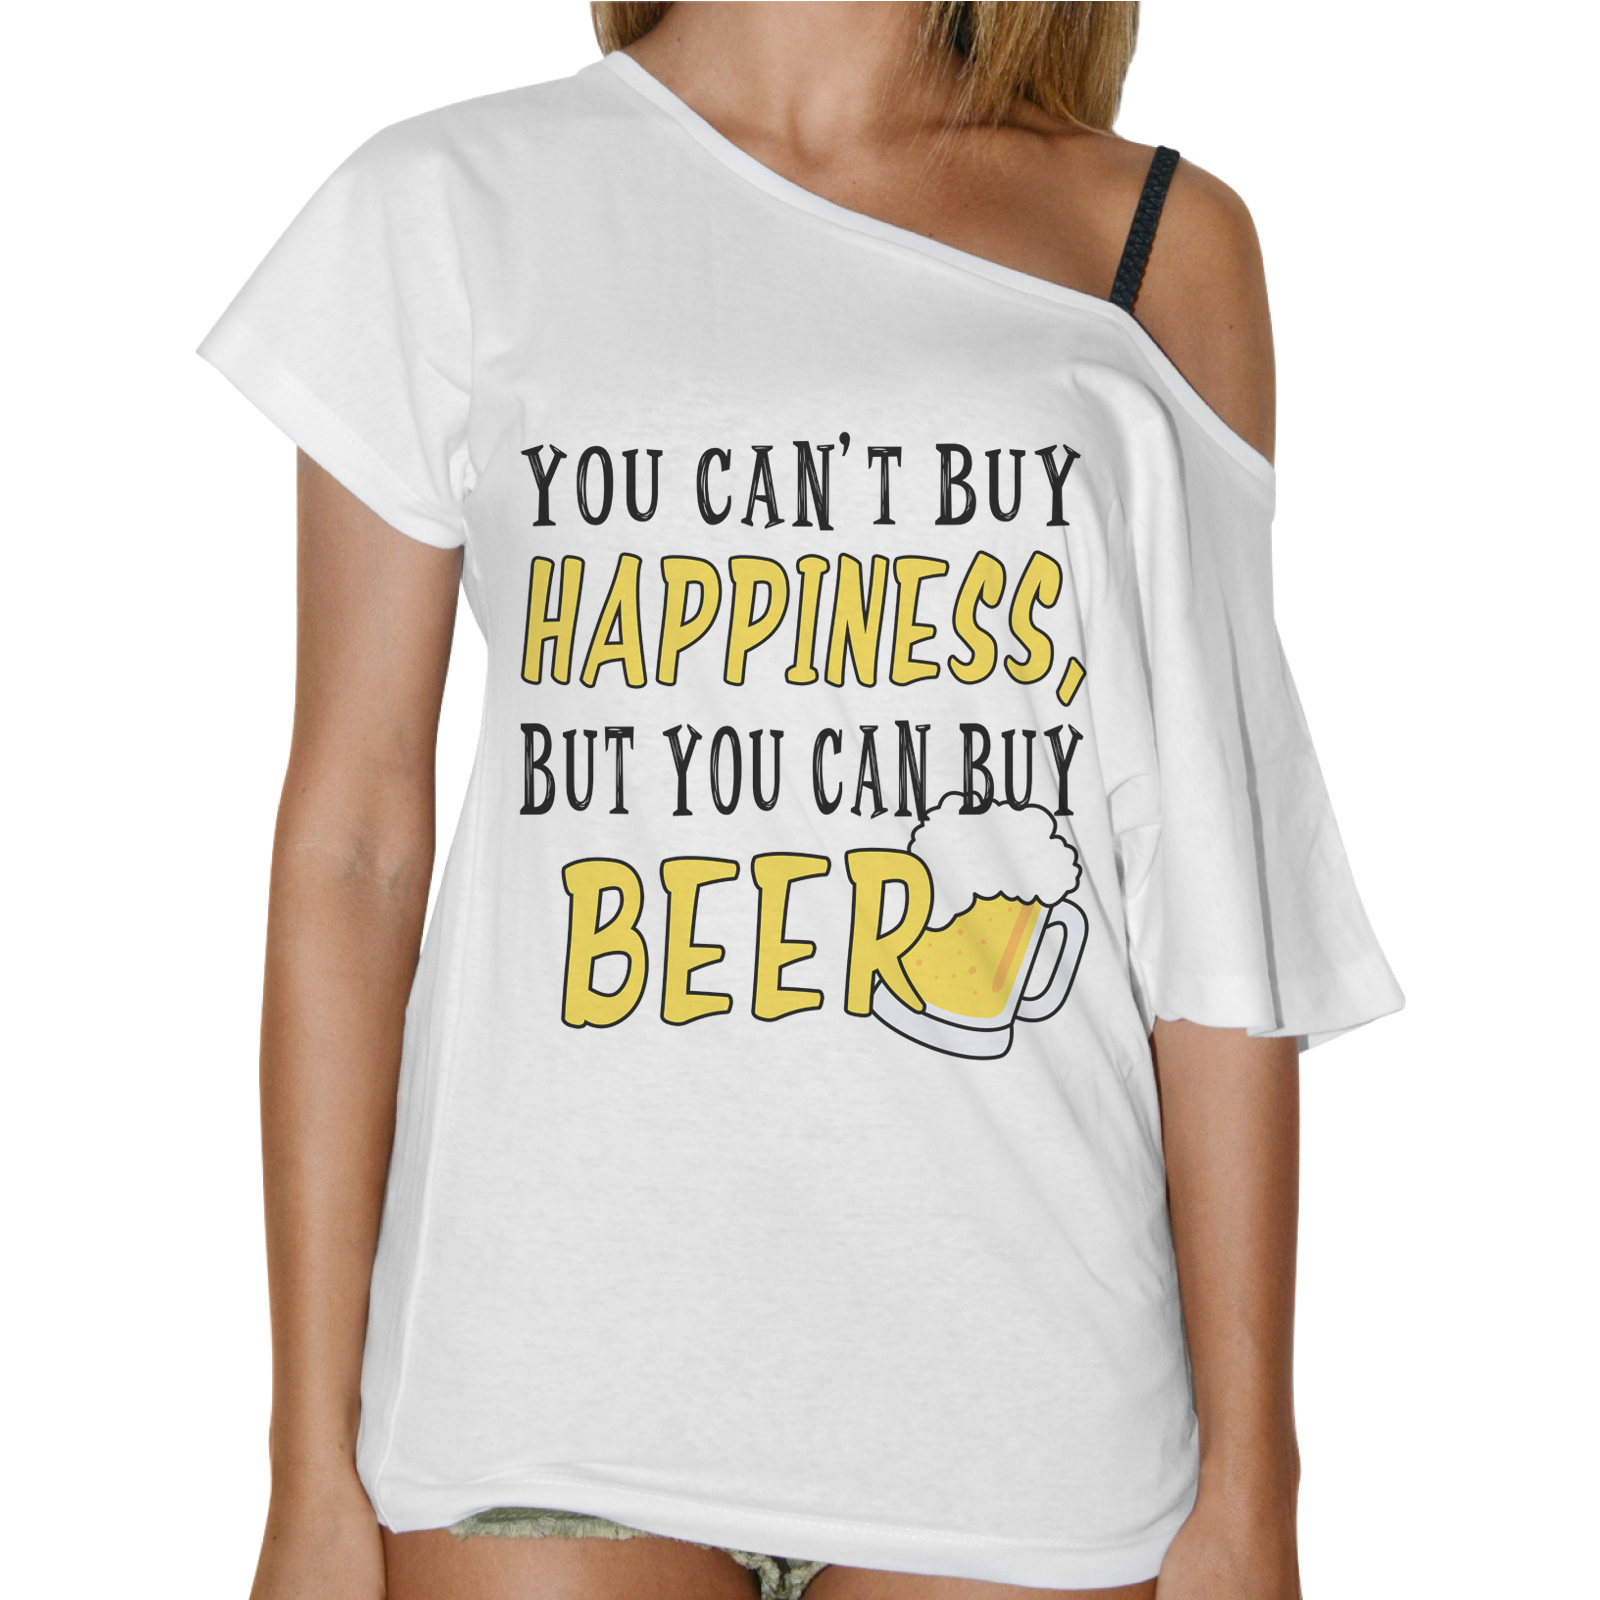 T-Shirt Donna Collo Barca YOU CAN BUY BEER